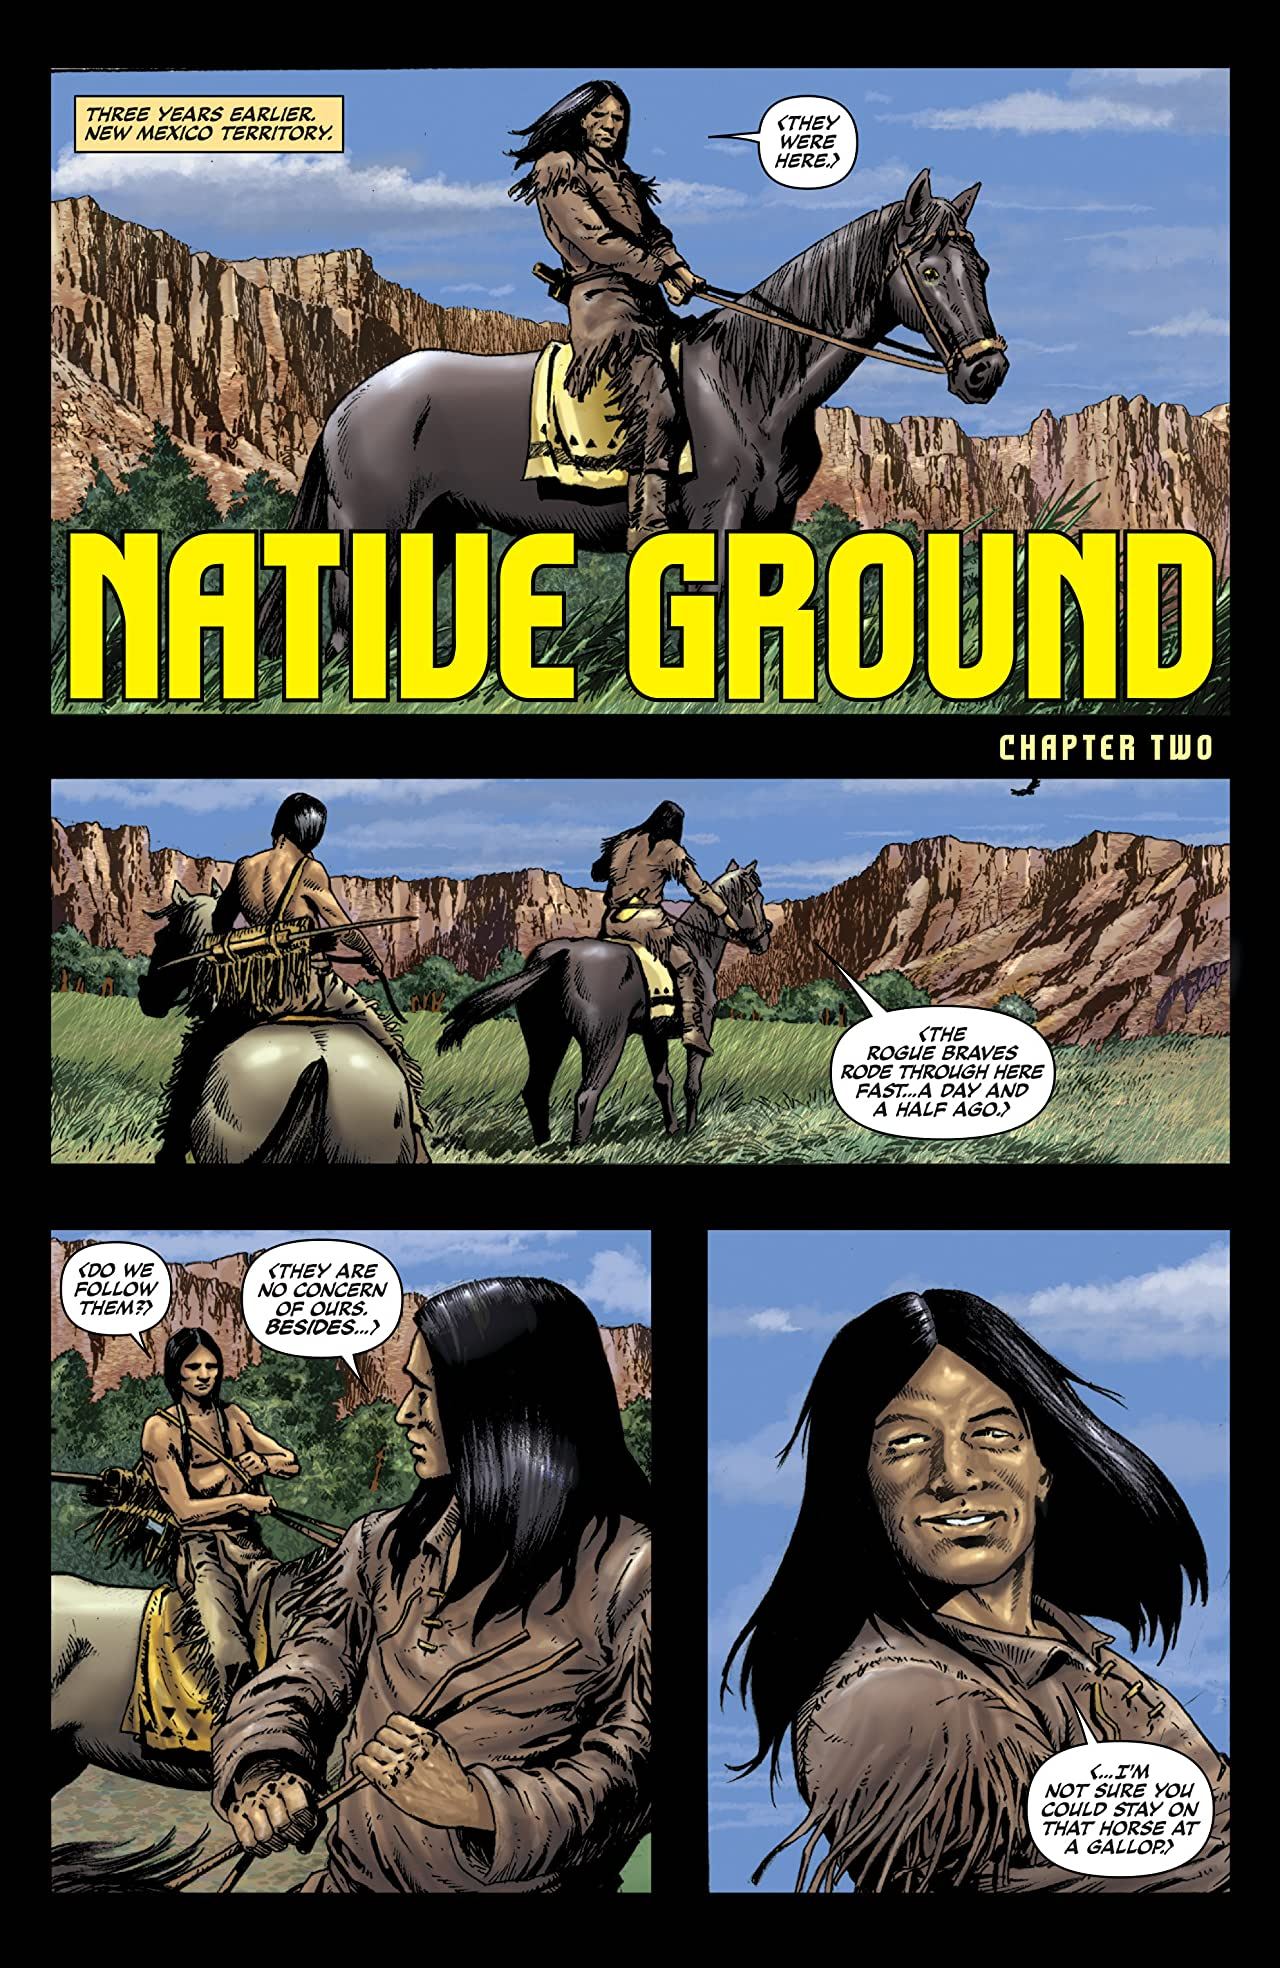 The Lone Ranger Vol. 2 #8